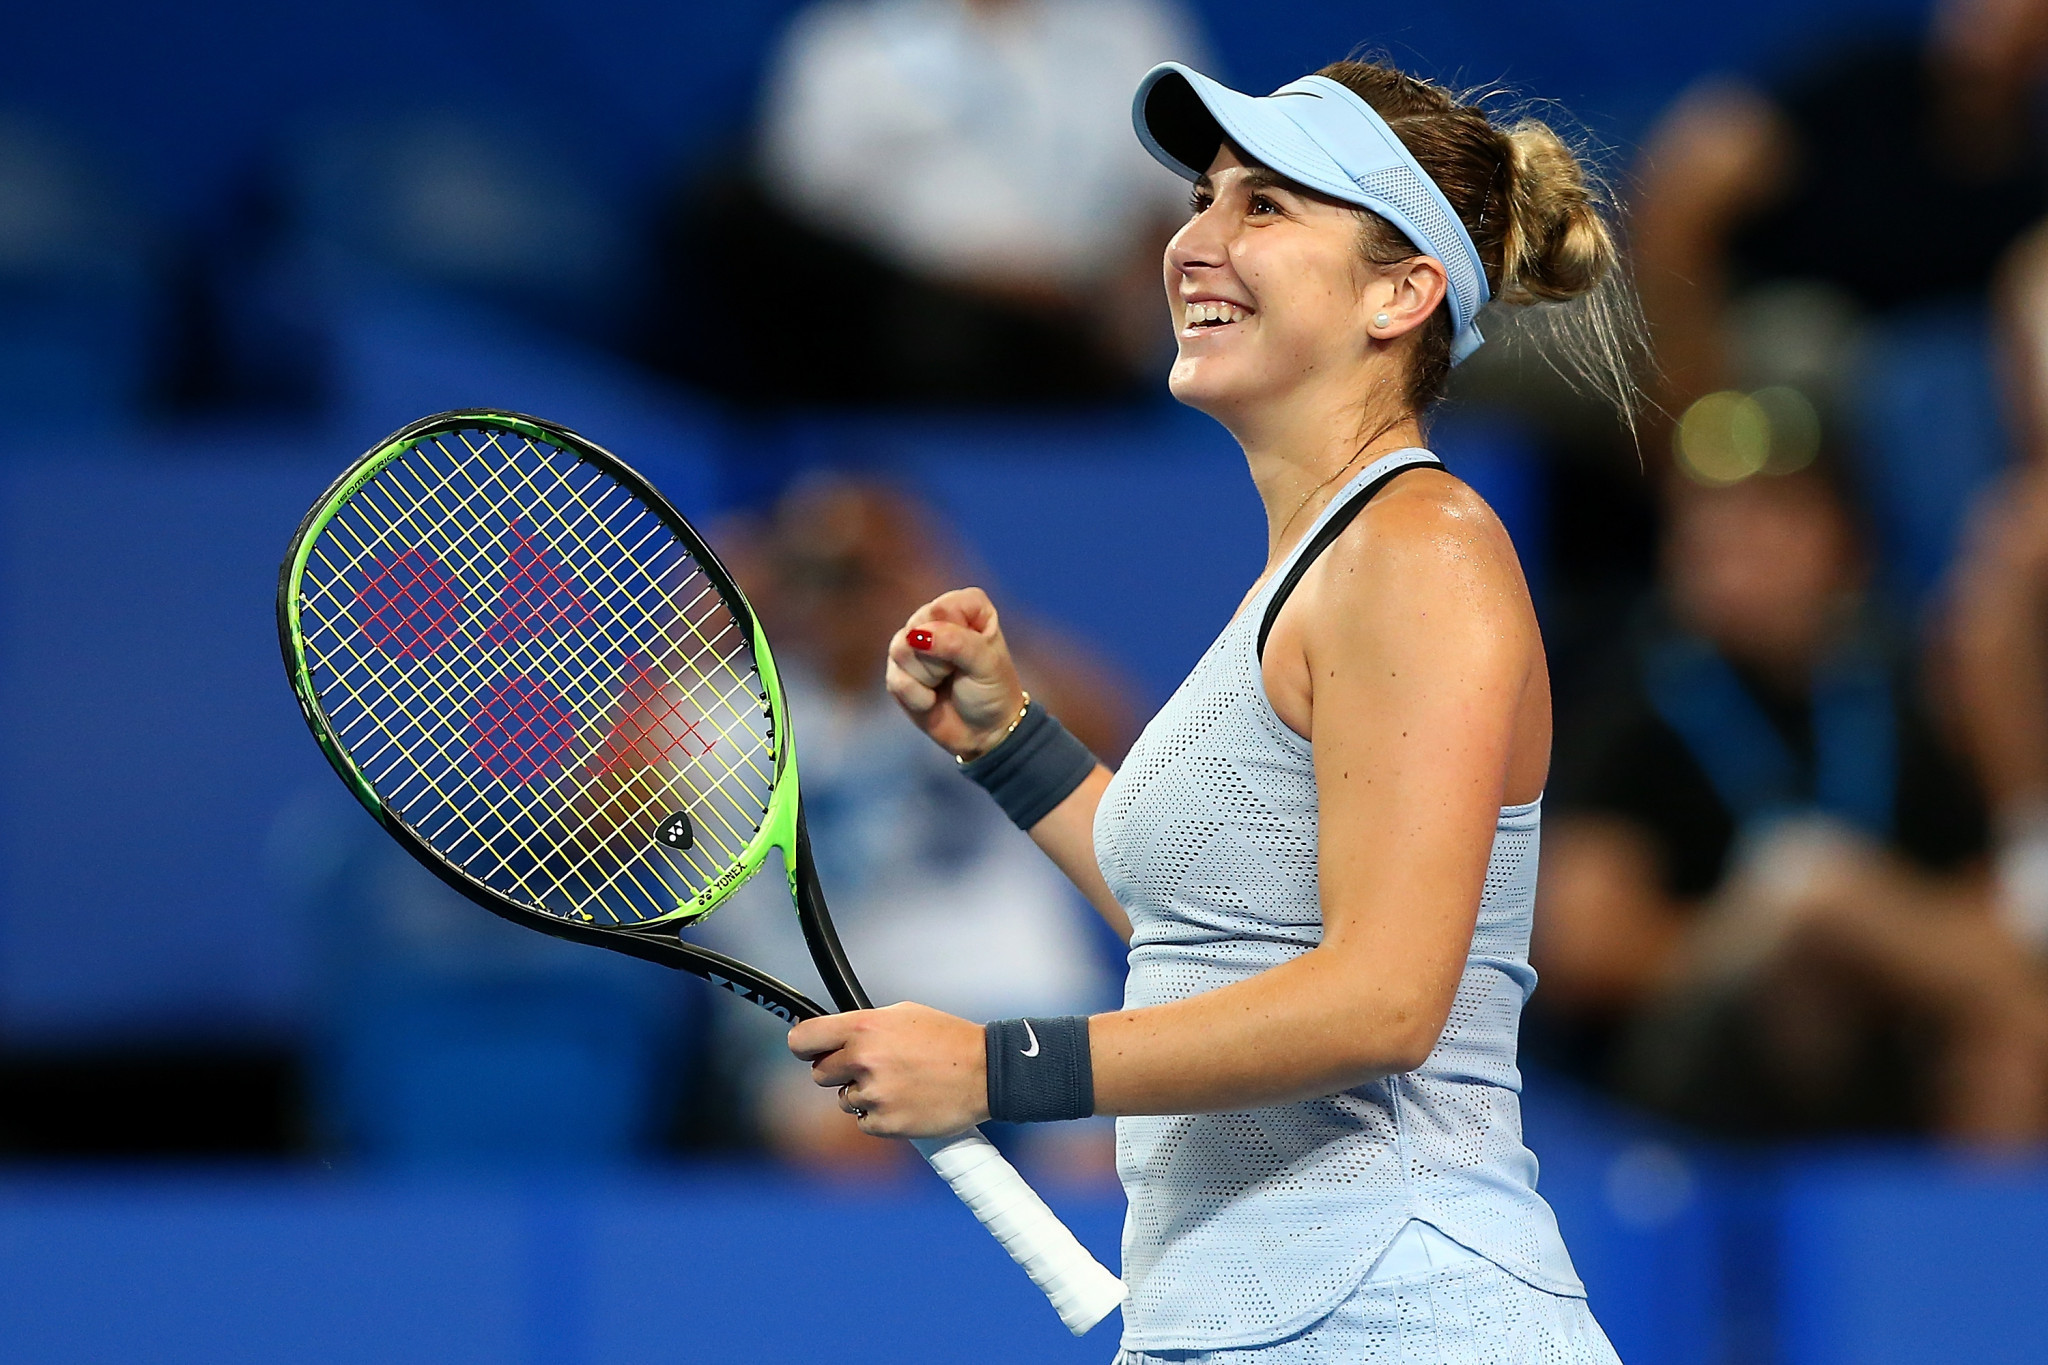 Bencic becomes third 2019 women's semi-finalist to pull out of US Open